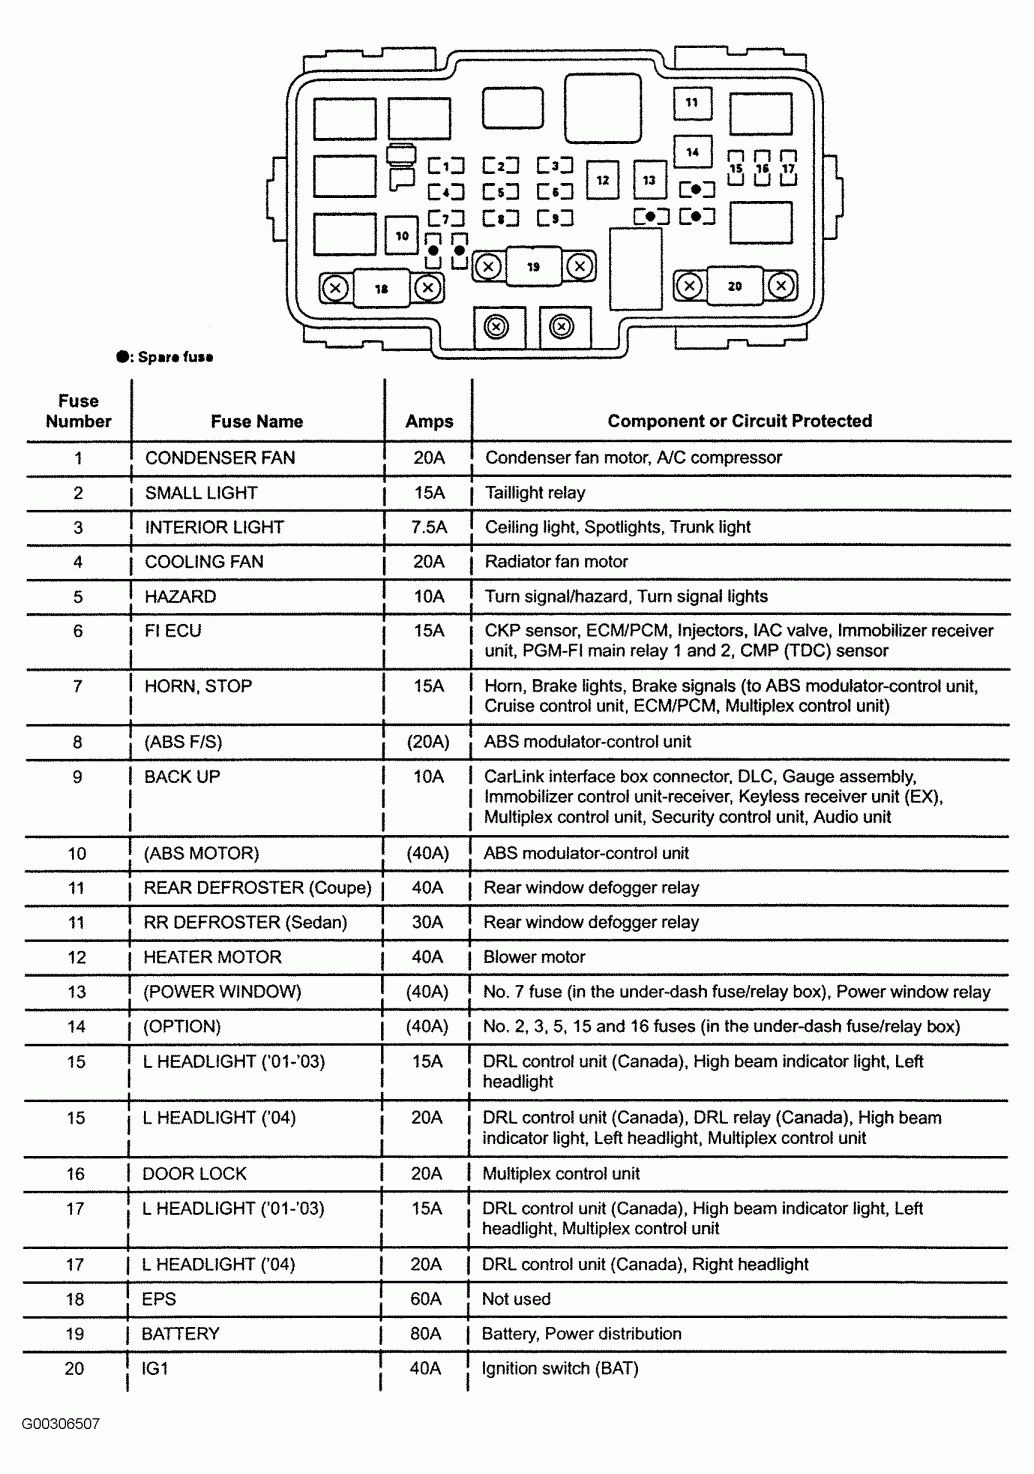 Electric Wiring Diagram Honda Accord Coupe 2013 and Eg Coupe Fuse Box -  Wiring Diagrams Folder in 2020 | Honda accord, Honda crv interior, Honda  civicPinterest